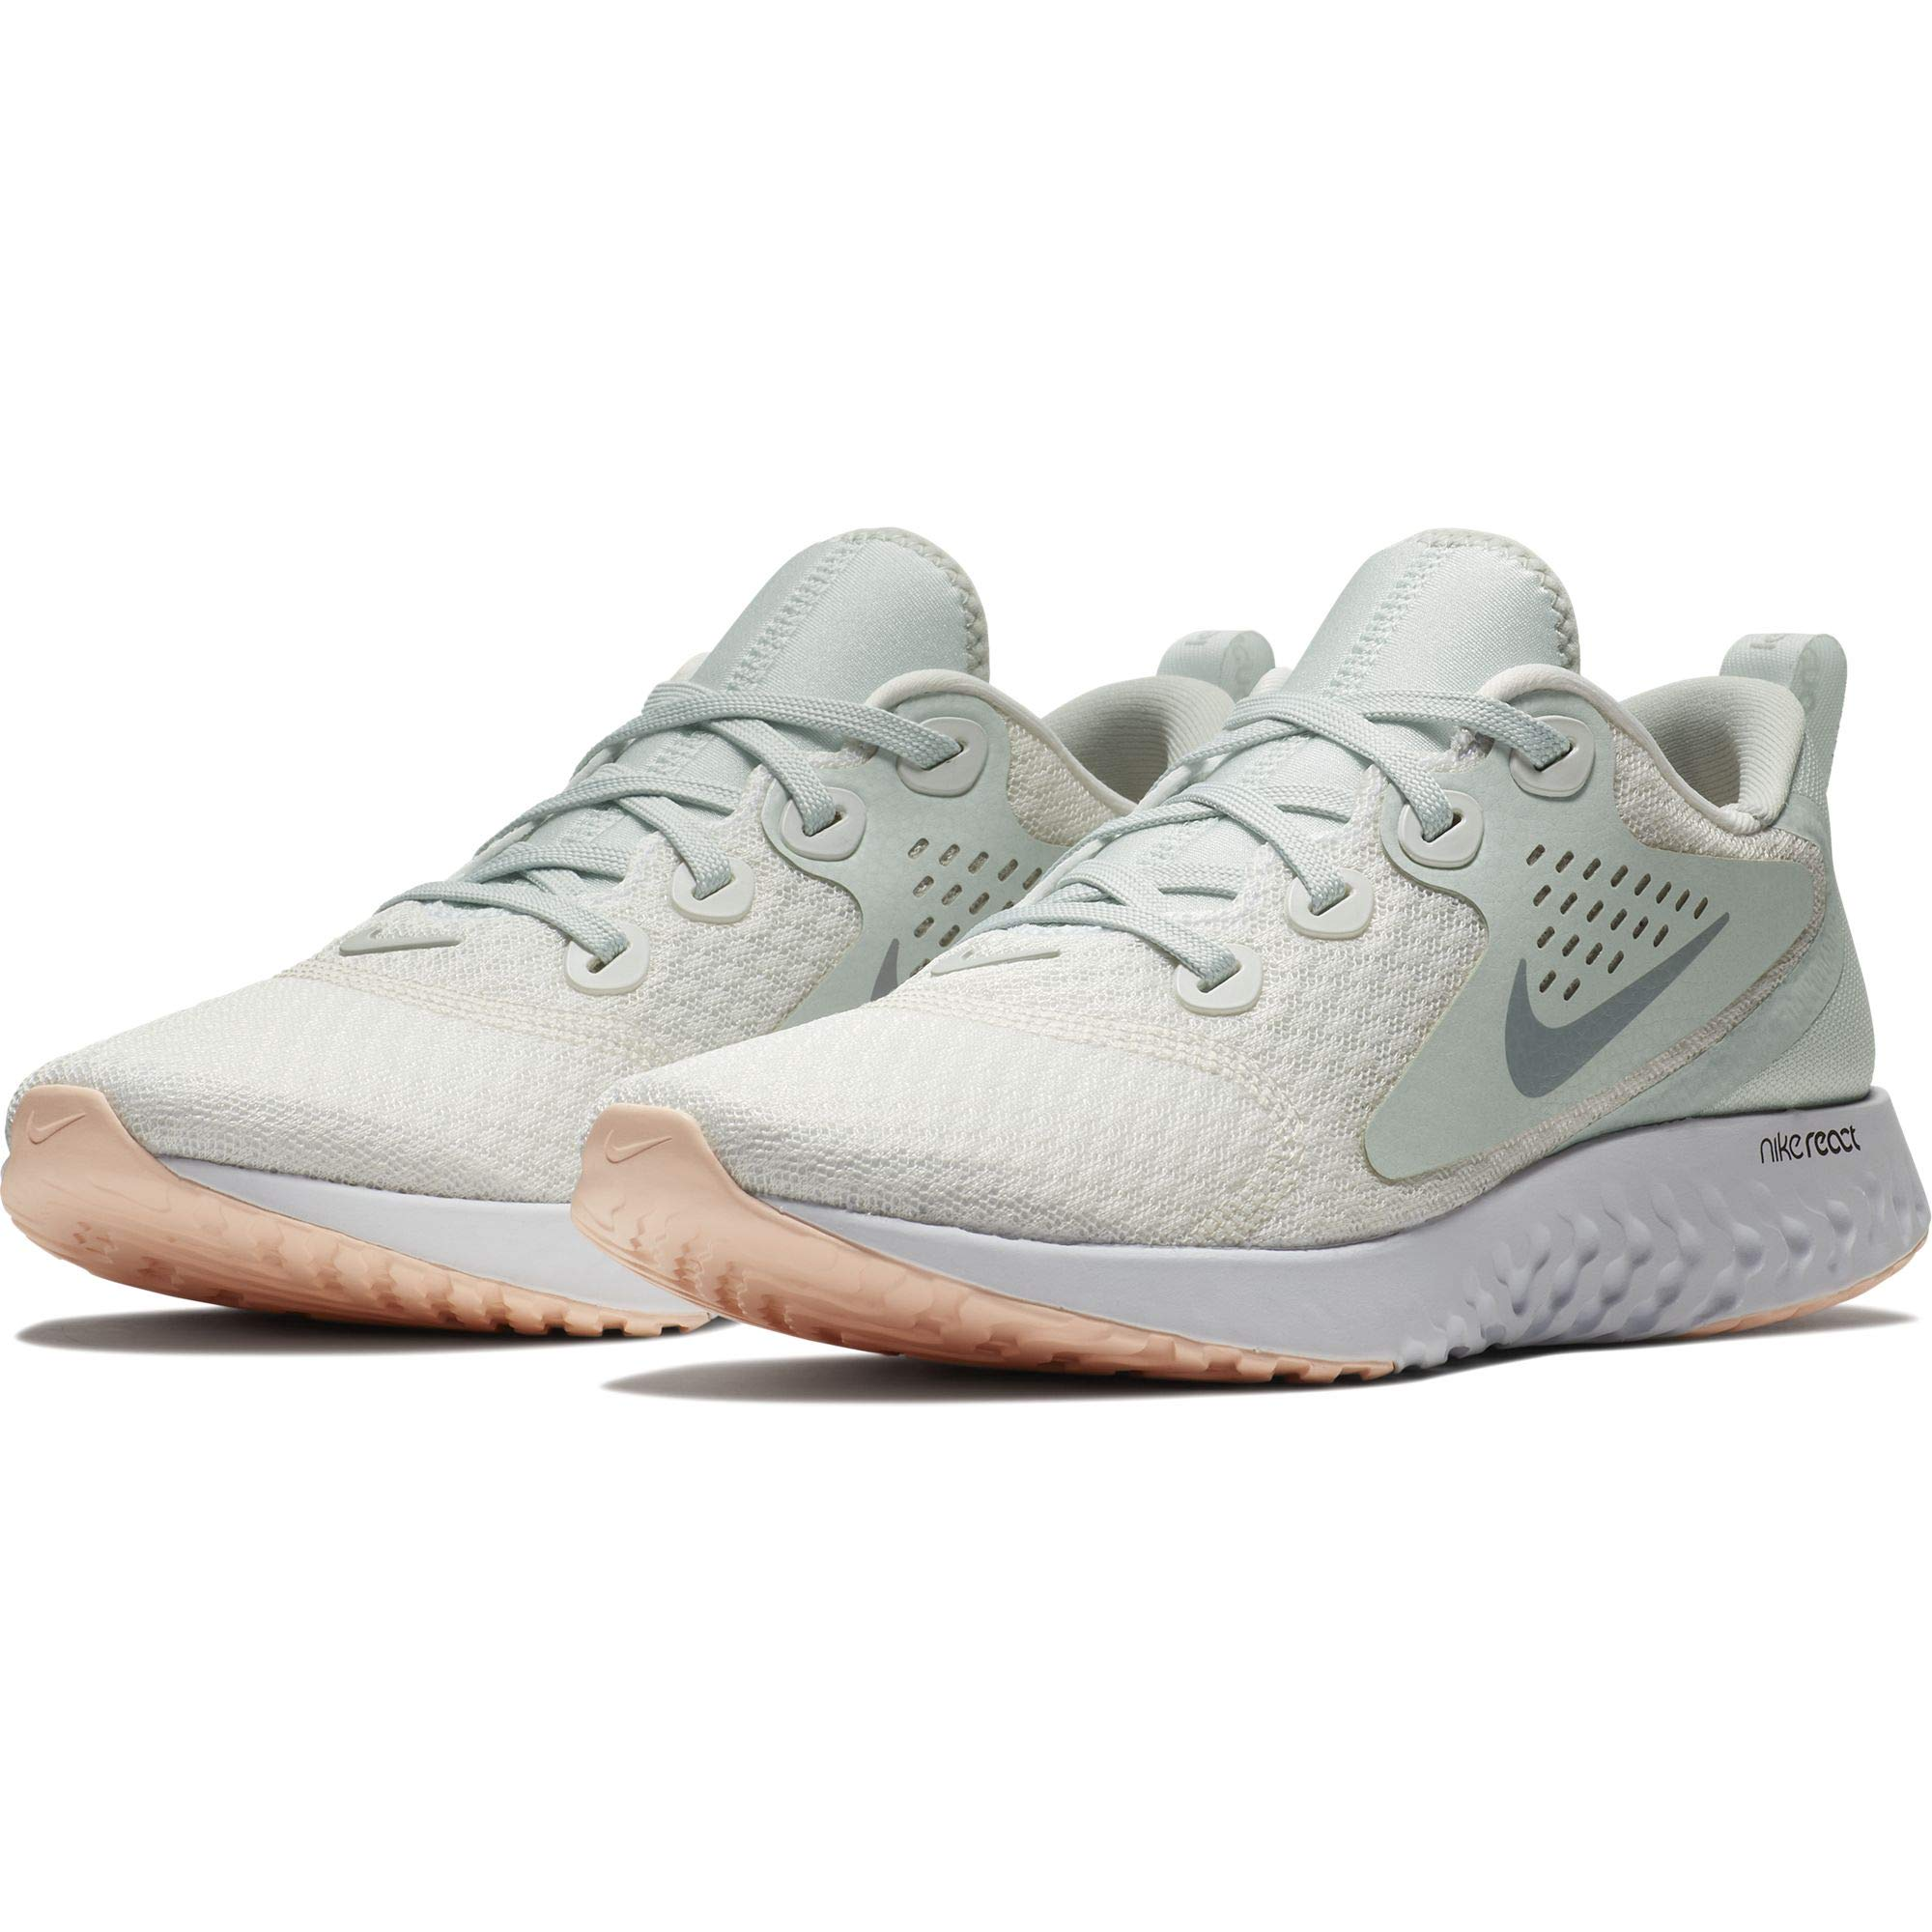 5837916c77a3a Galleon - Nike Women's WMNS Legend React Competition Running Shoes,  Multicolour (Summit White/Wolf Grey/Light Silver 101), 3 UK